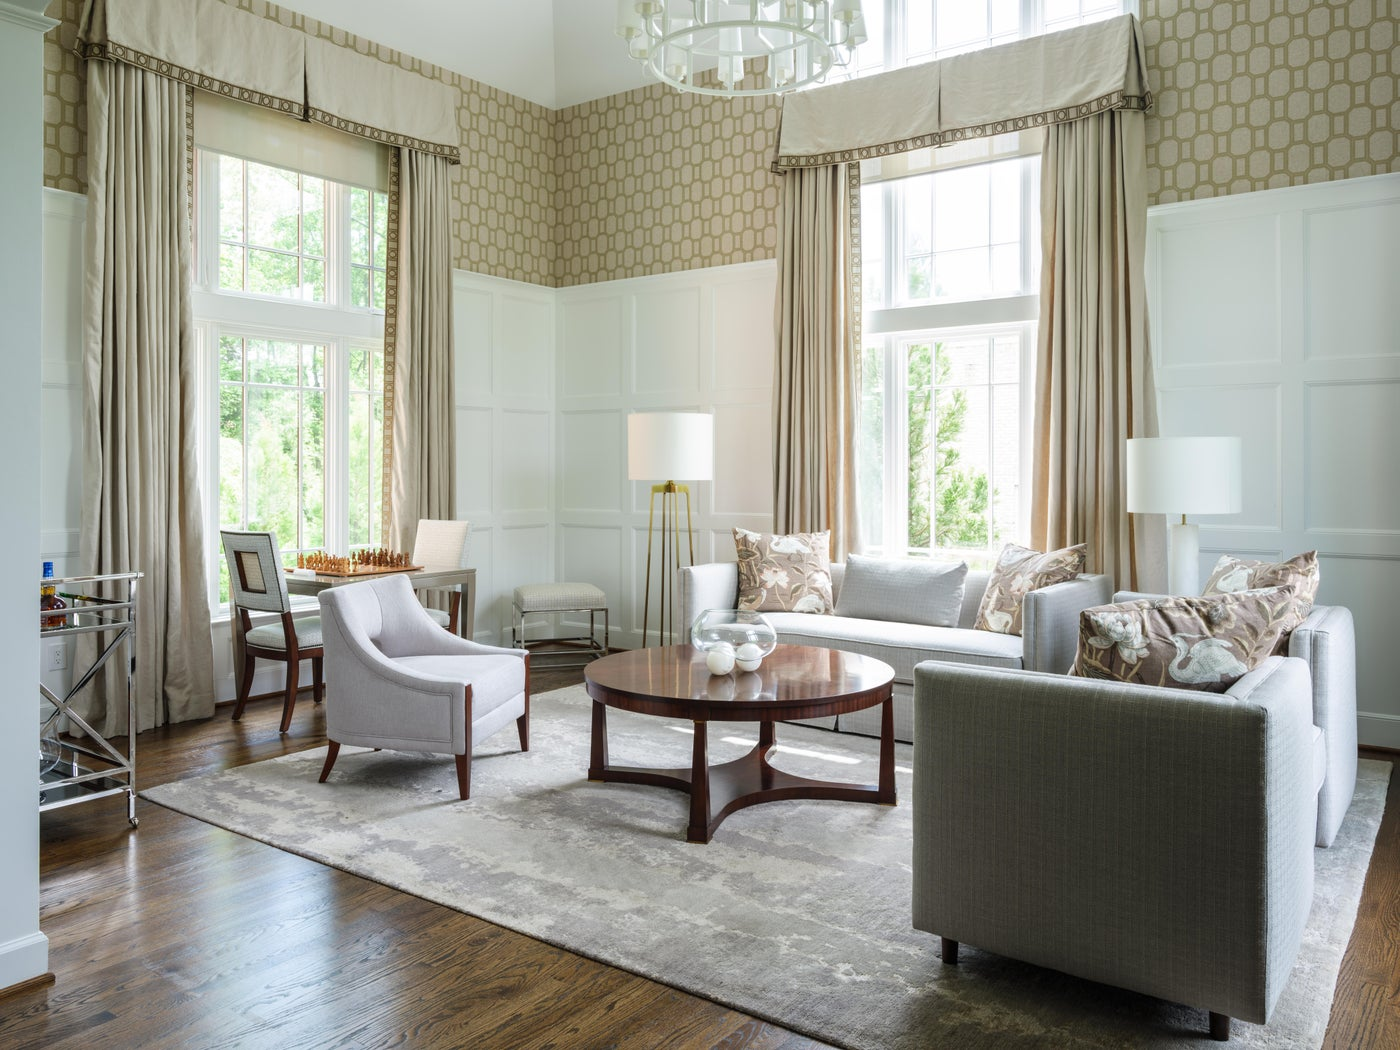 Conservatory with paneled wainscoting, geometric wallcovering and game table.